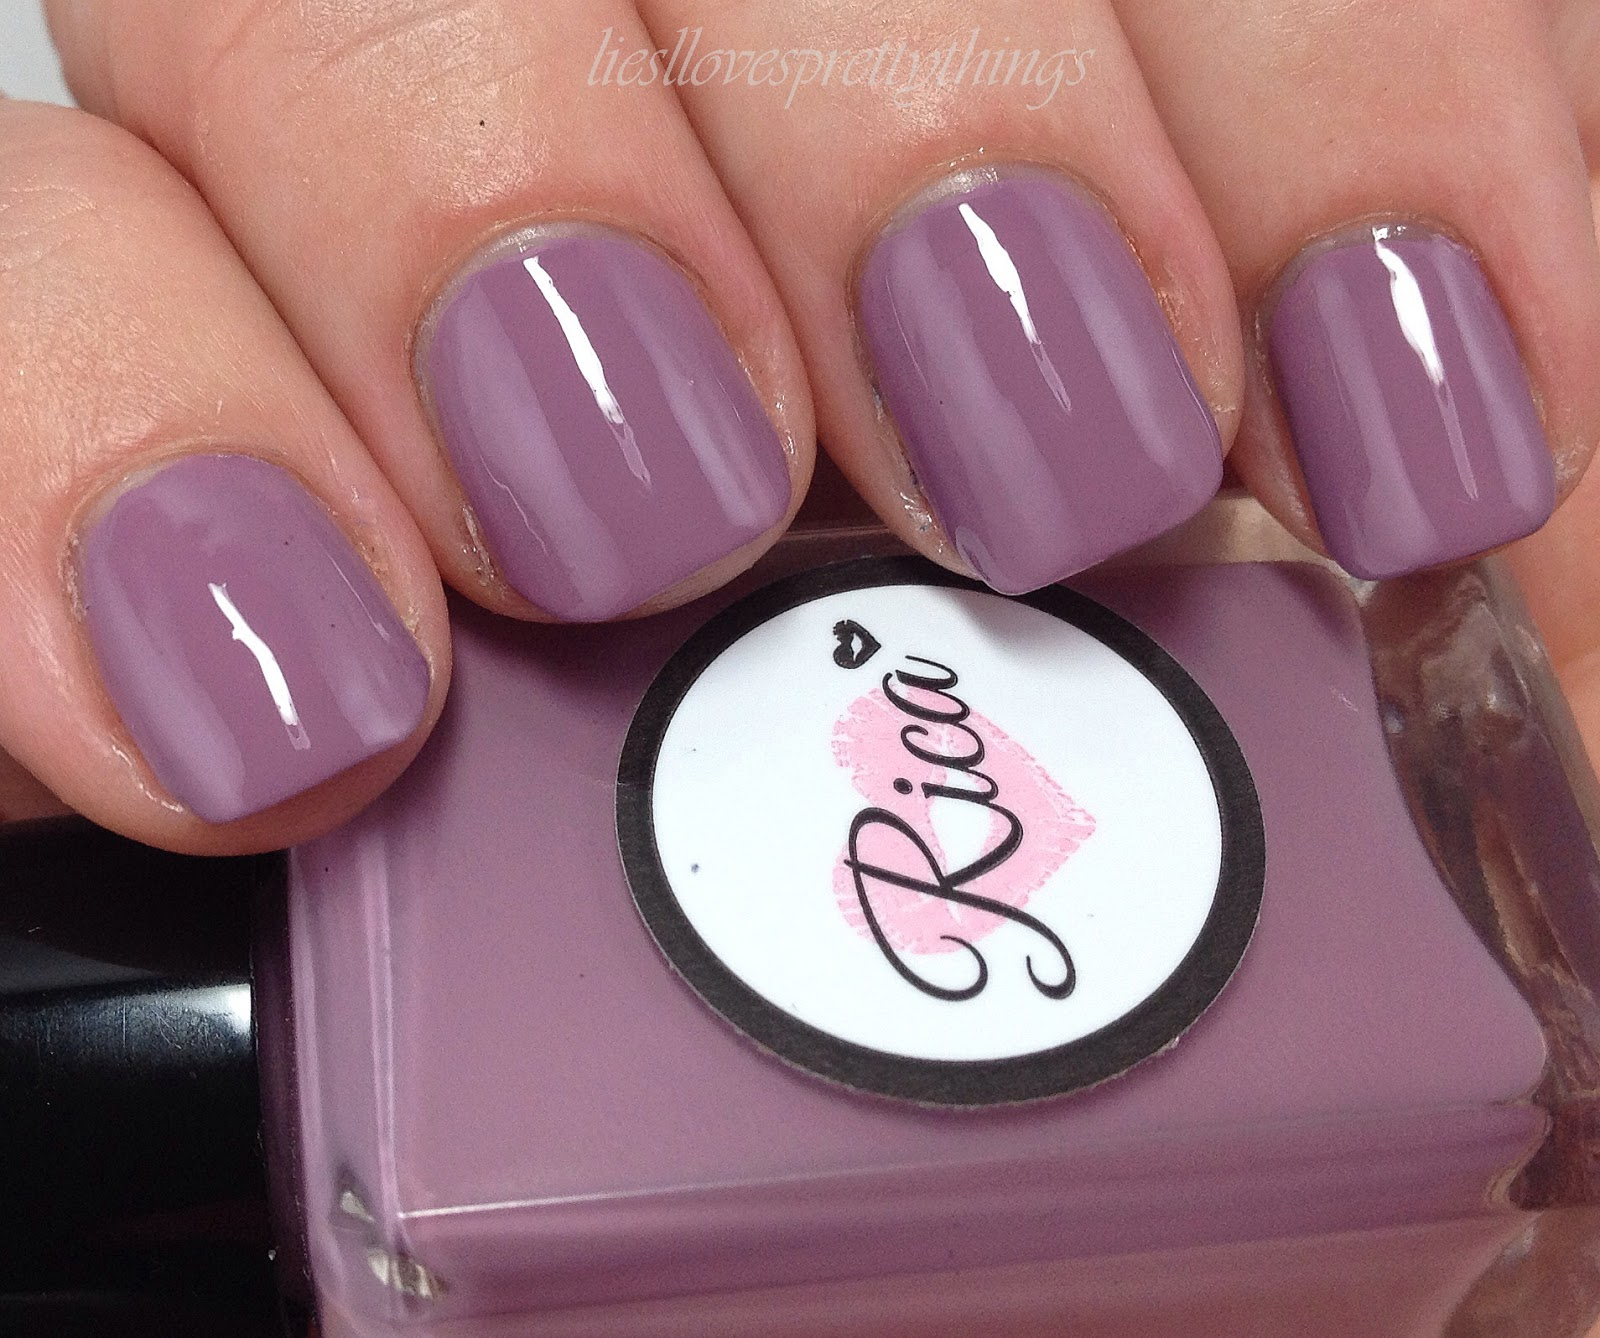 Rica Stamping Polish Prim & Proper swatch and review